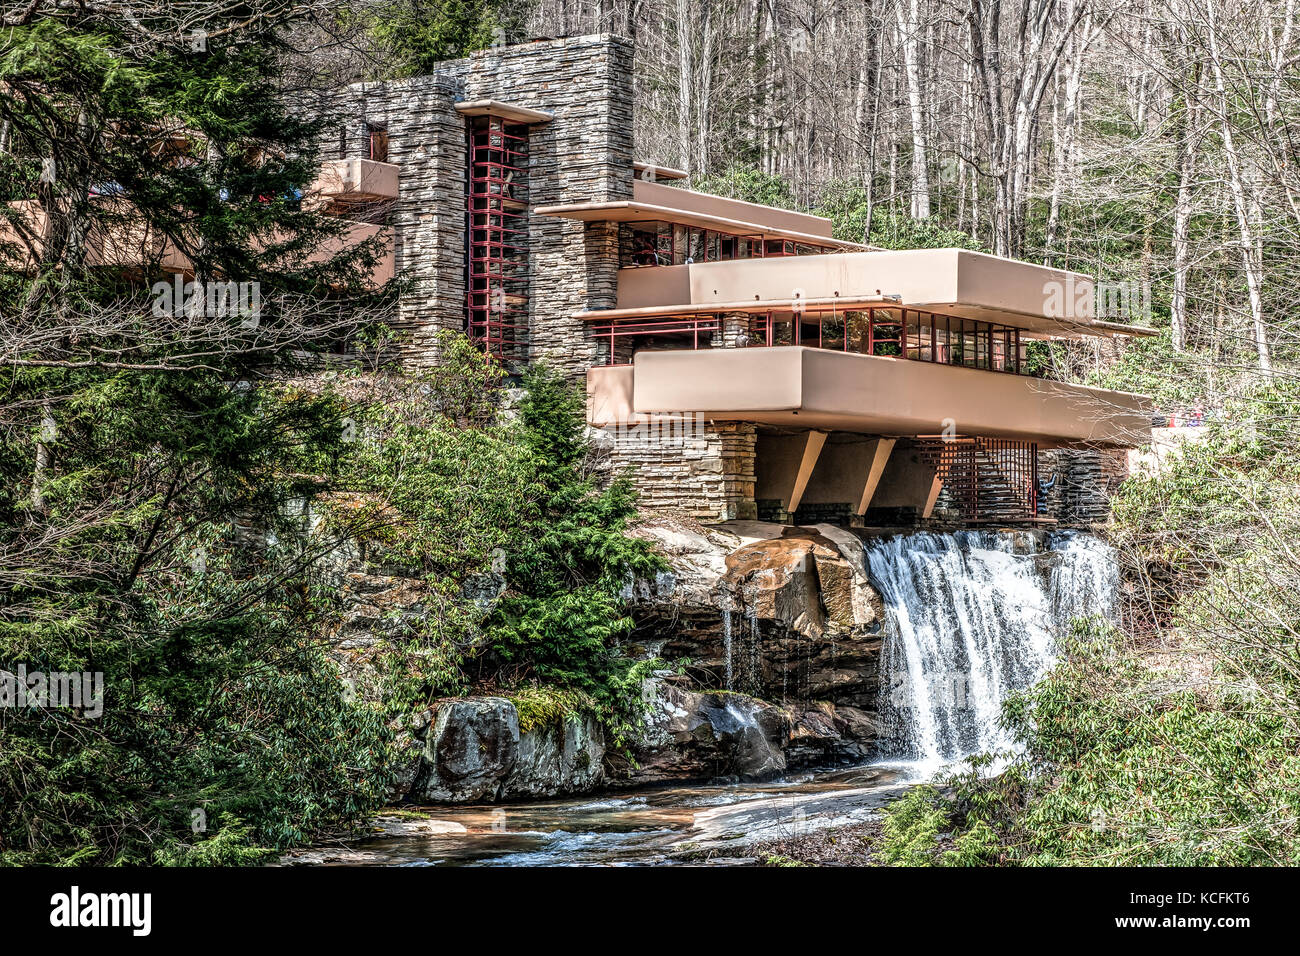 fallingwater house from the architect frank lloyd wright mill run